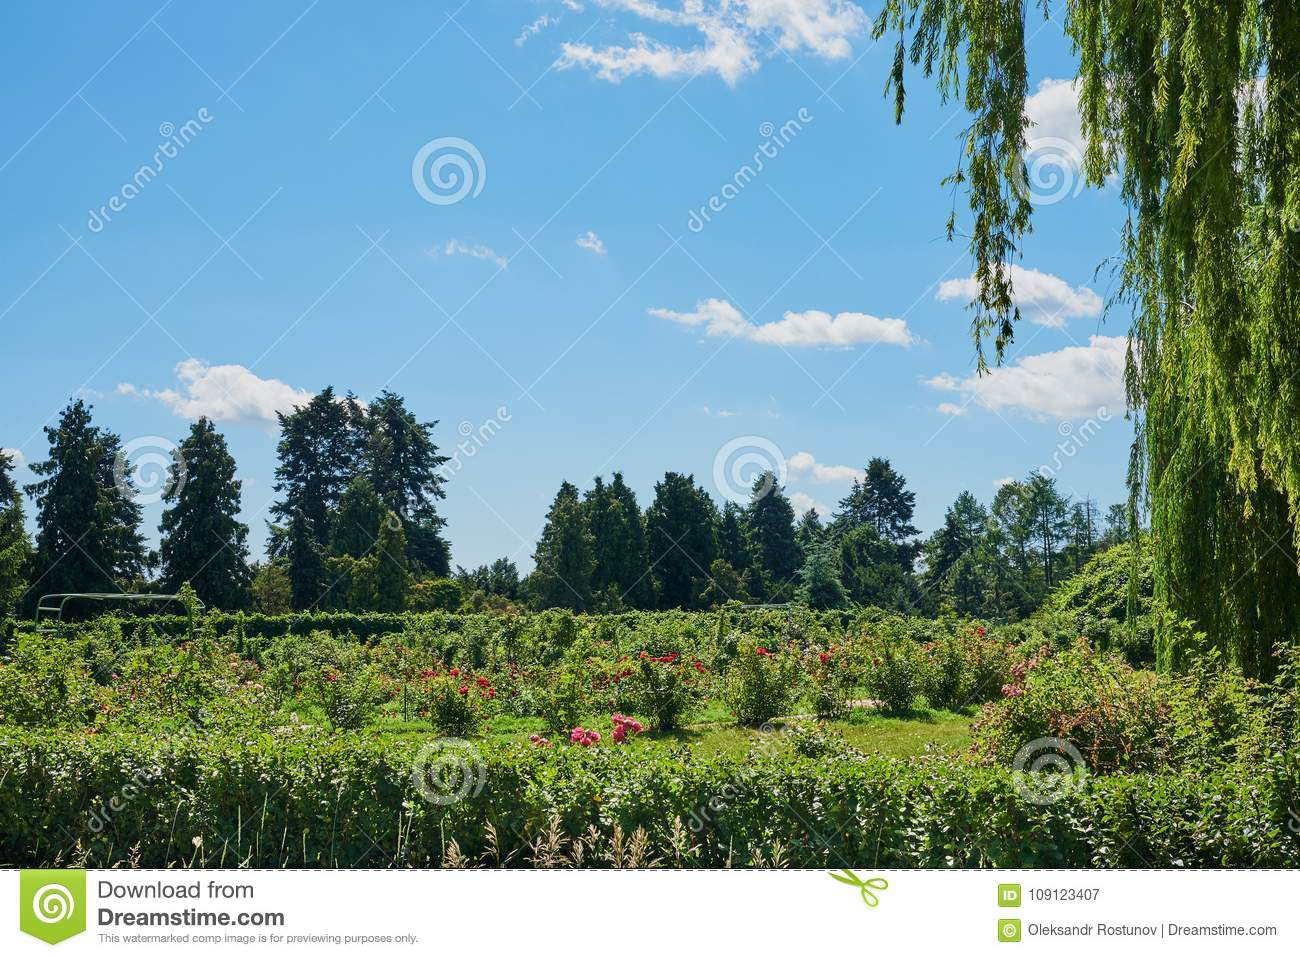 Beautiful landscape with firs, flowers, weeping willow